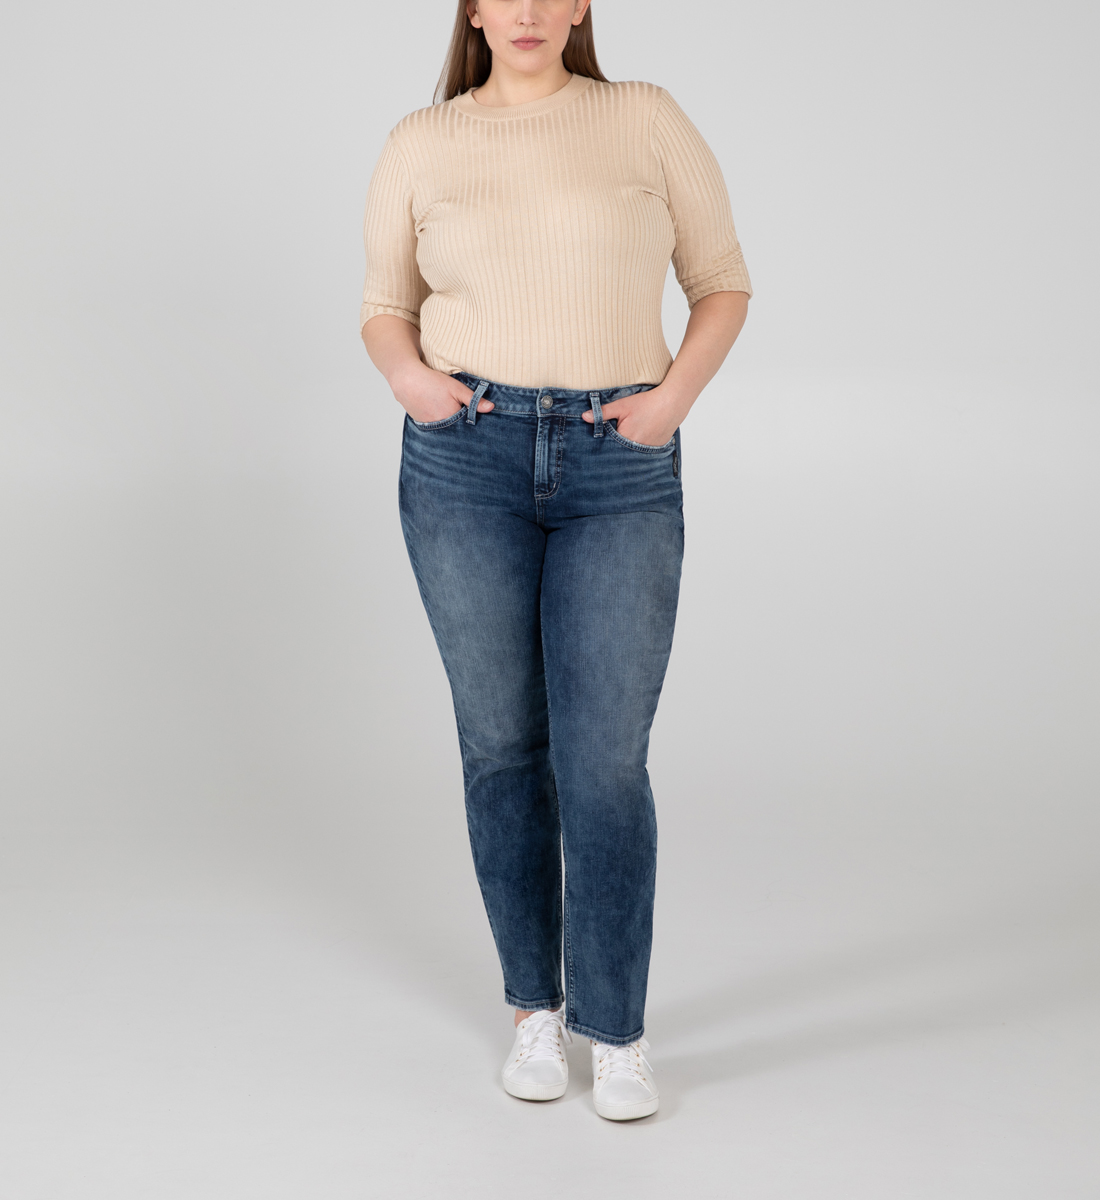 Silver Jeans Avery High Rise Straight Leg Jeans Plus Size